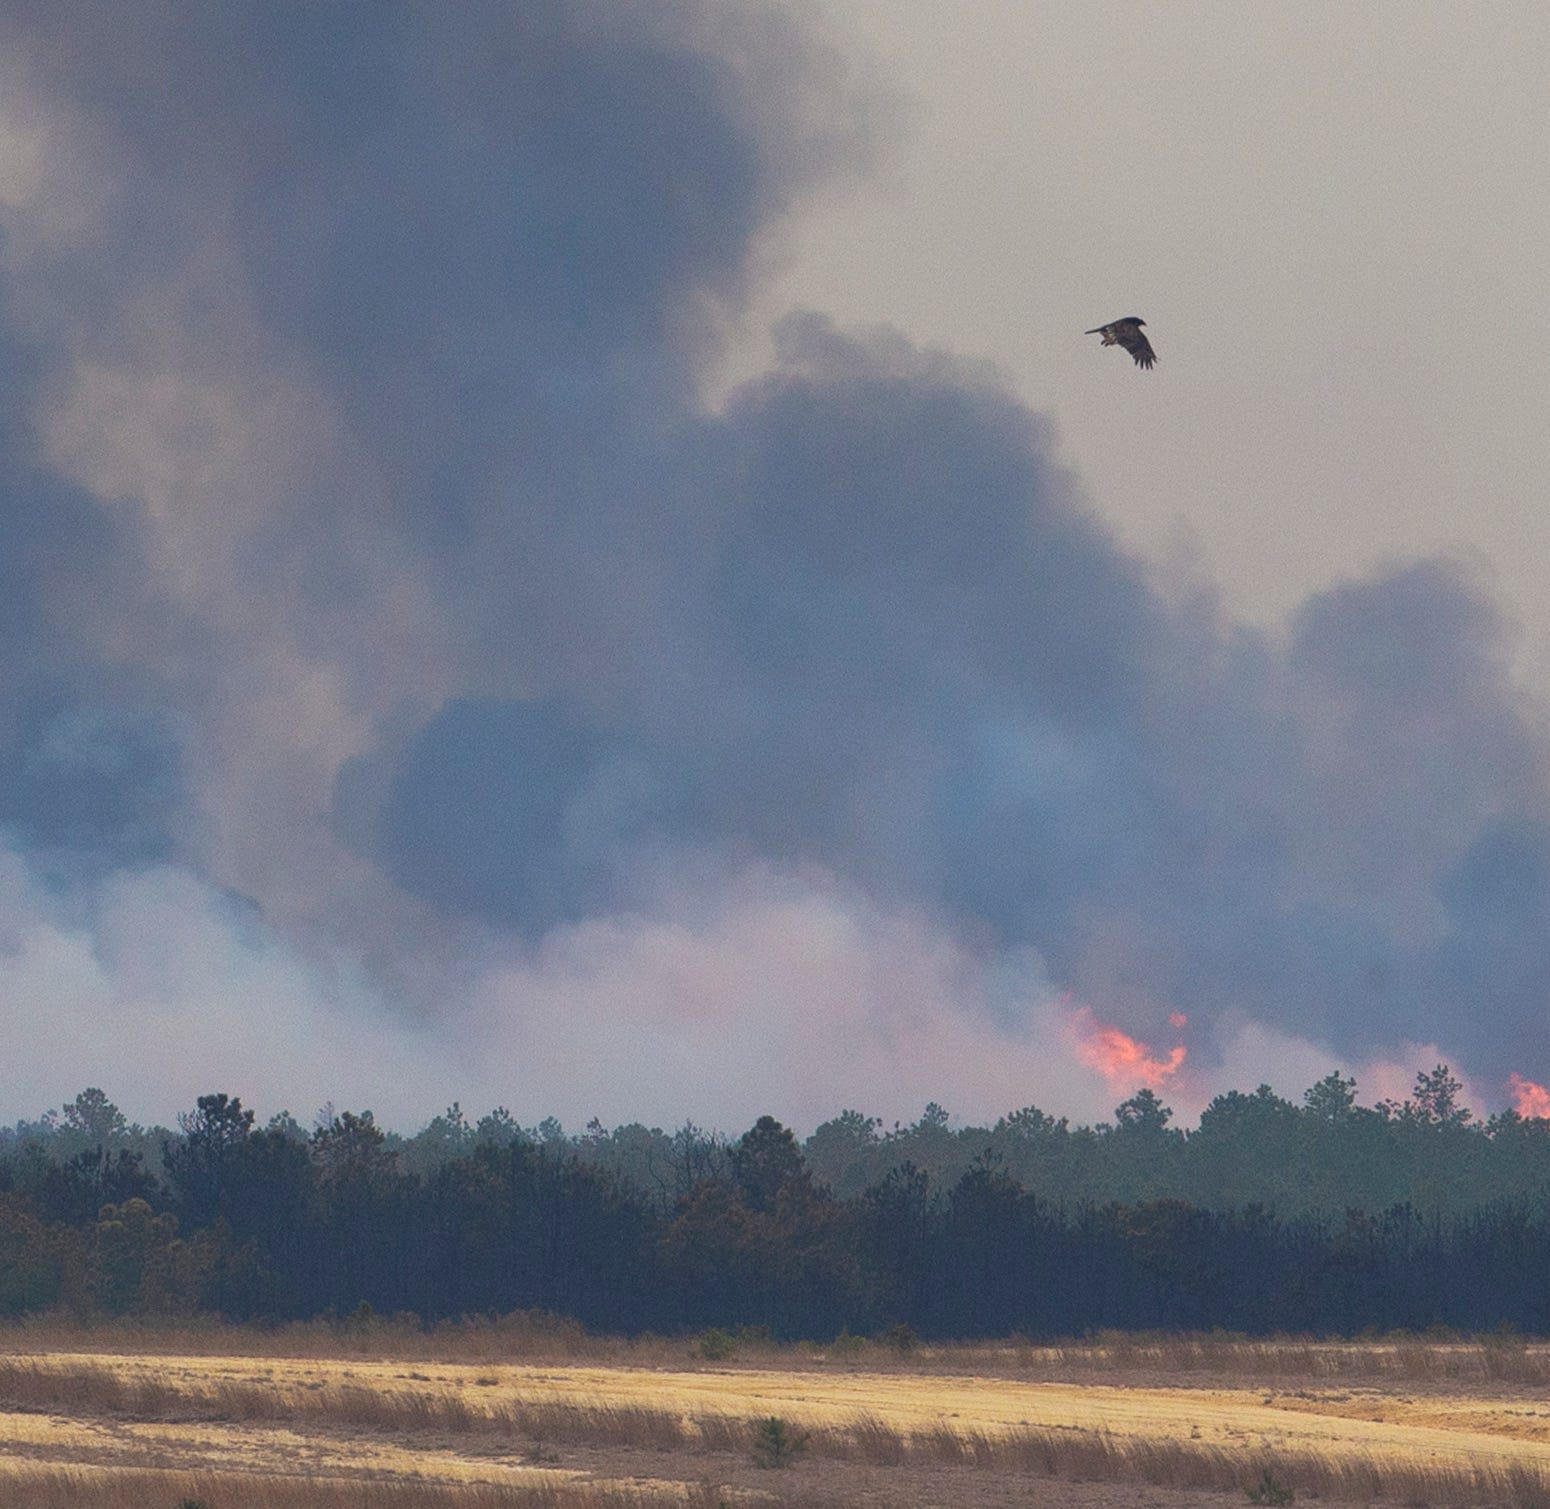 NJ forest fire update: 75% is contained; 10,000 acres still burning